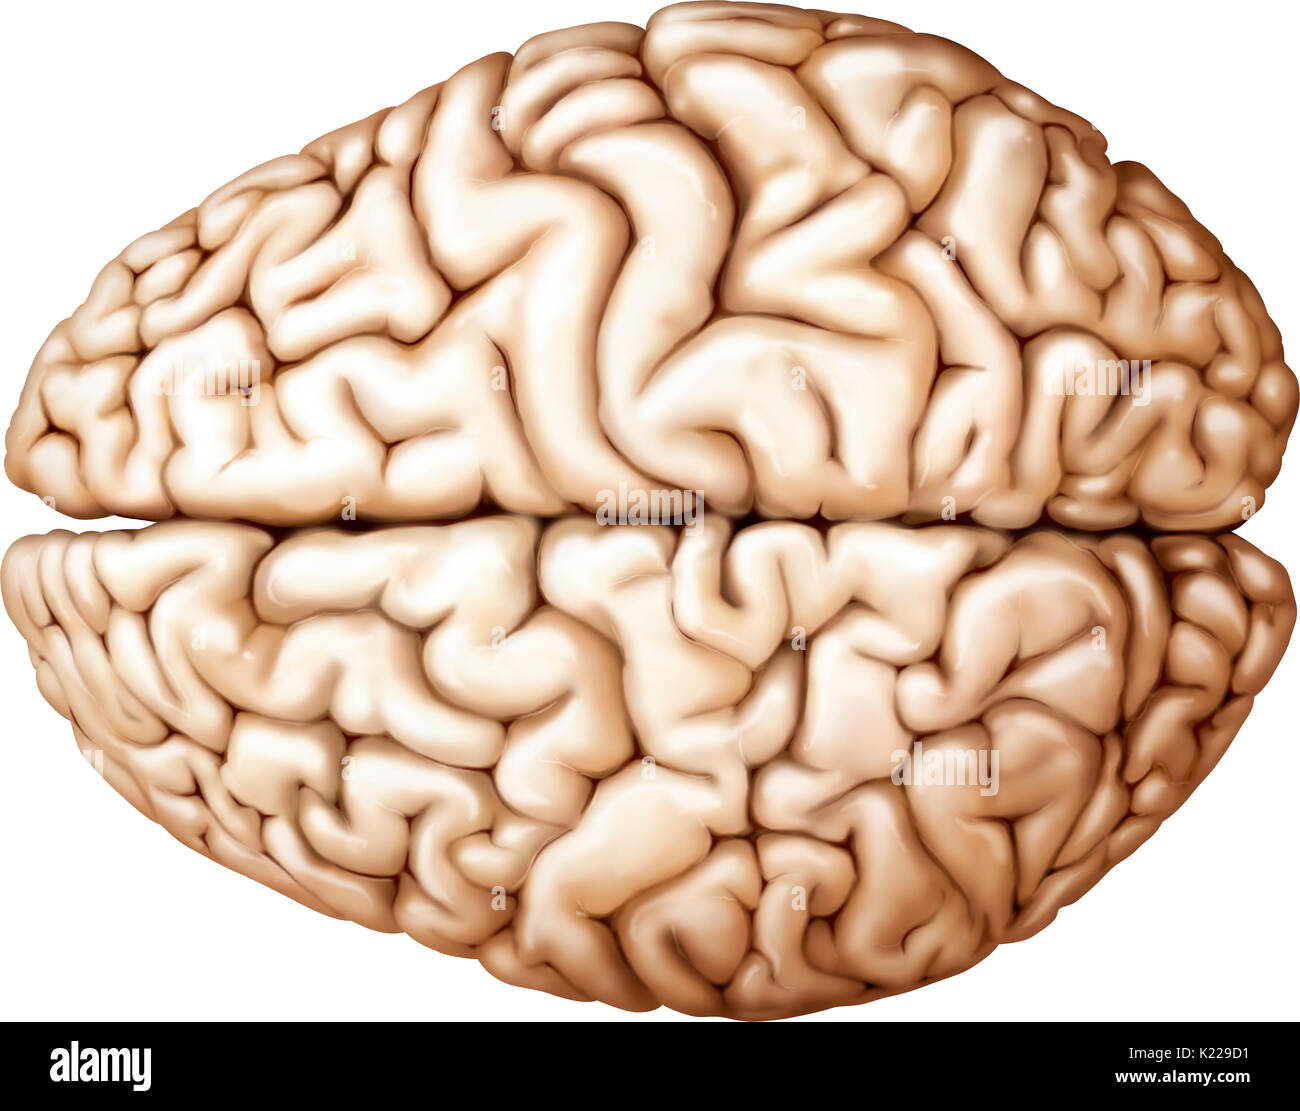 The cerebrum is the most voluminous and most complex part of the brain. It is made up of two hemispheres subdivided into four cerebral lobes, which cover the diencephalon. The most complex functions are completed by the exterior layer of the brain, the cerebral cortex. - Stock Image